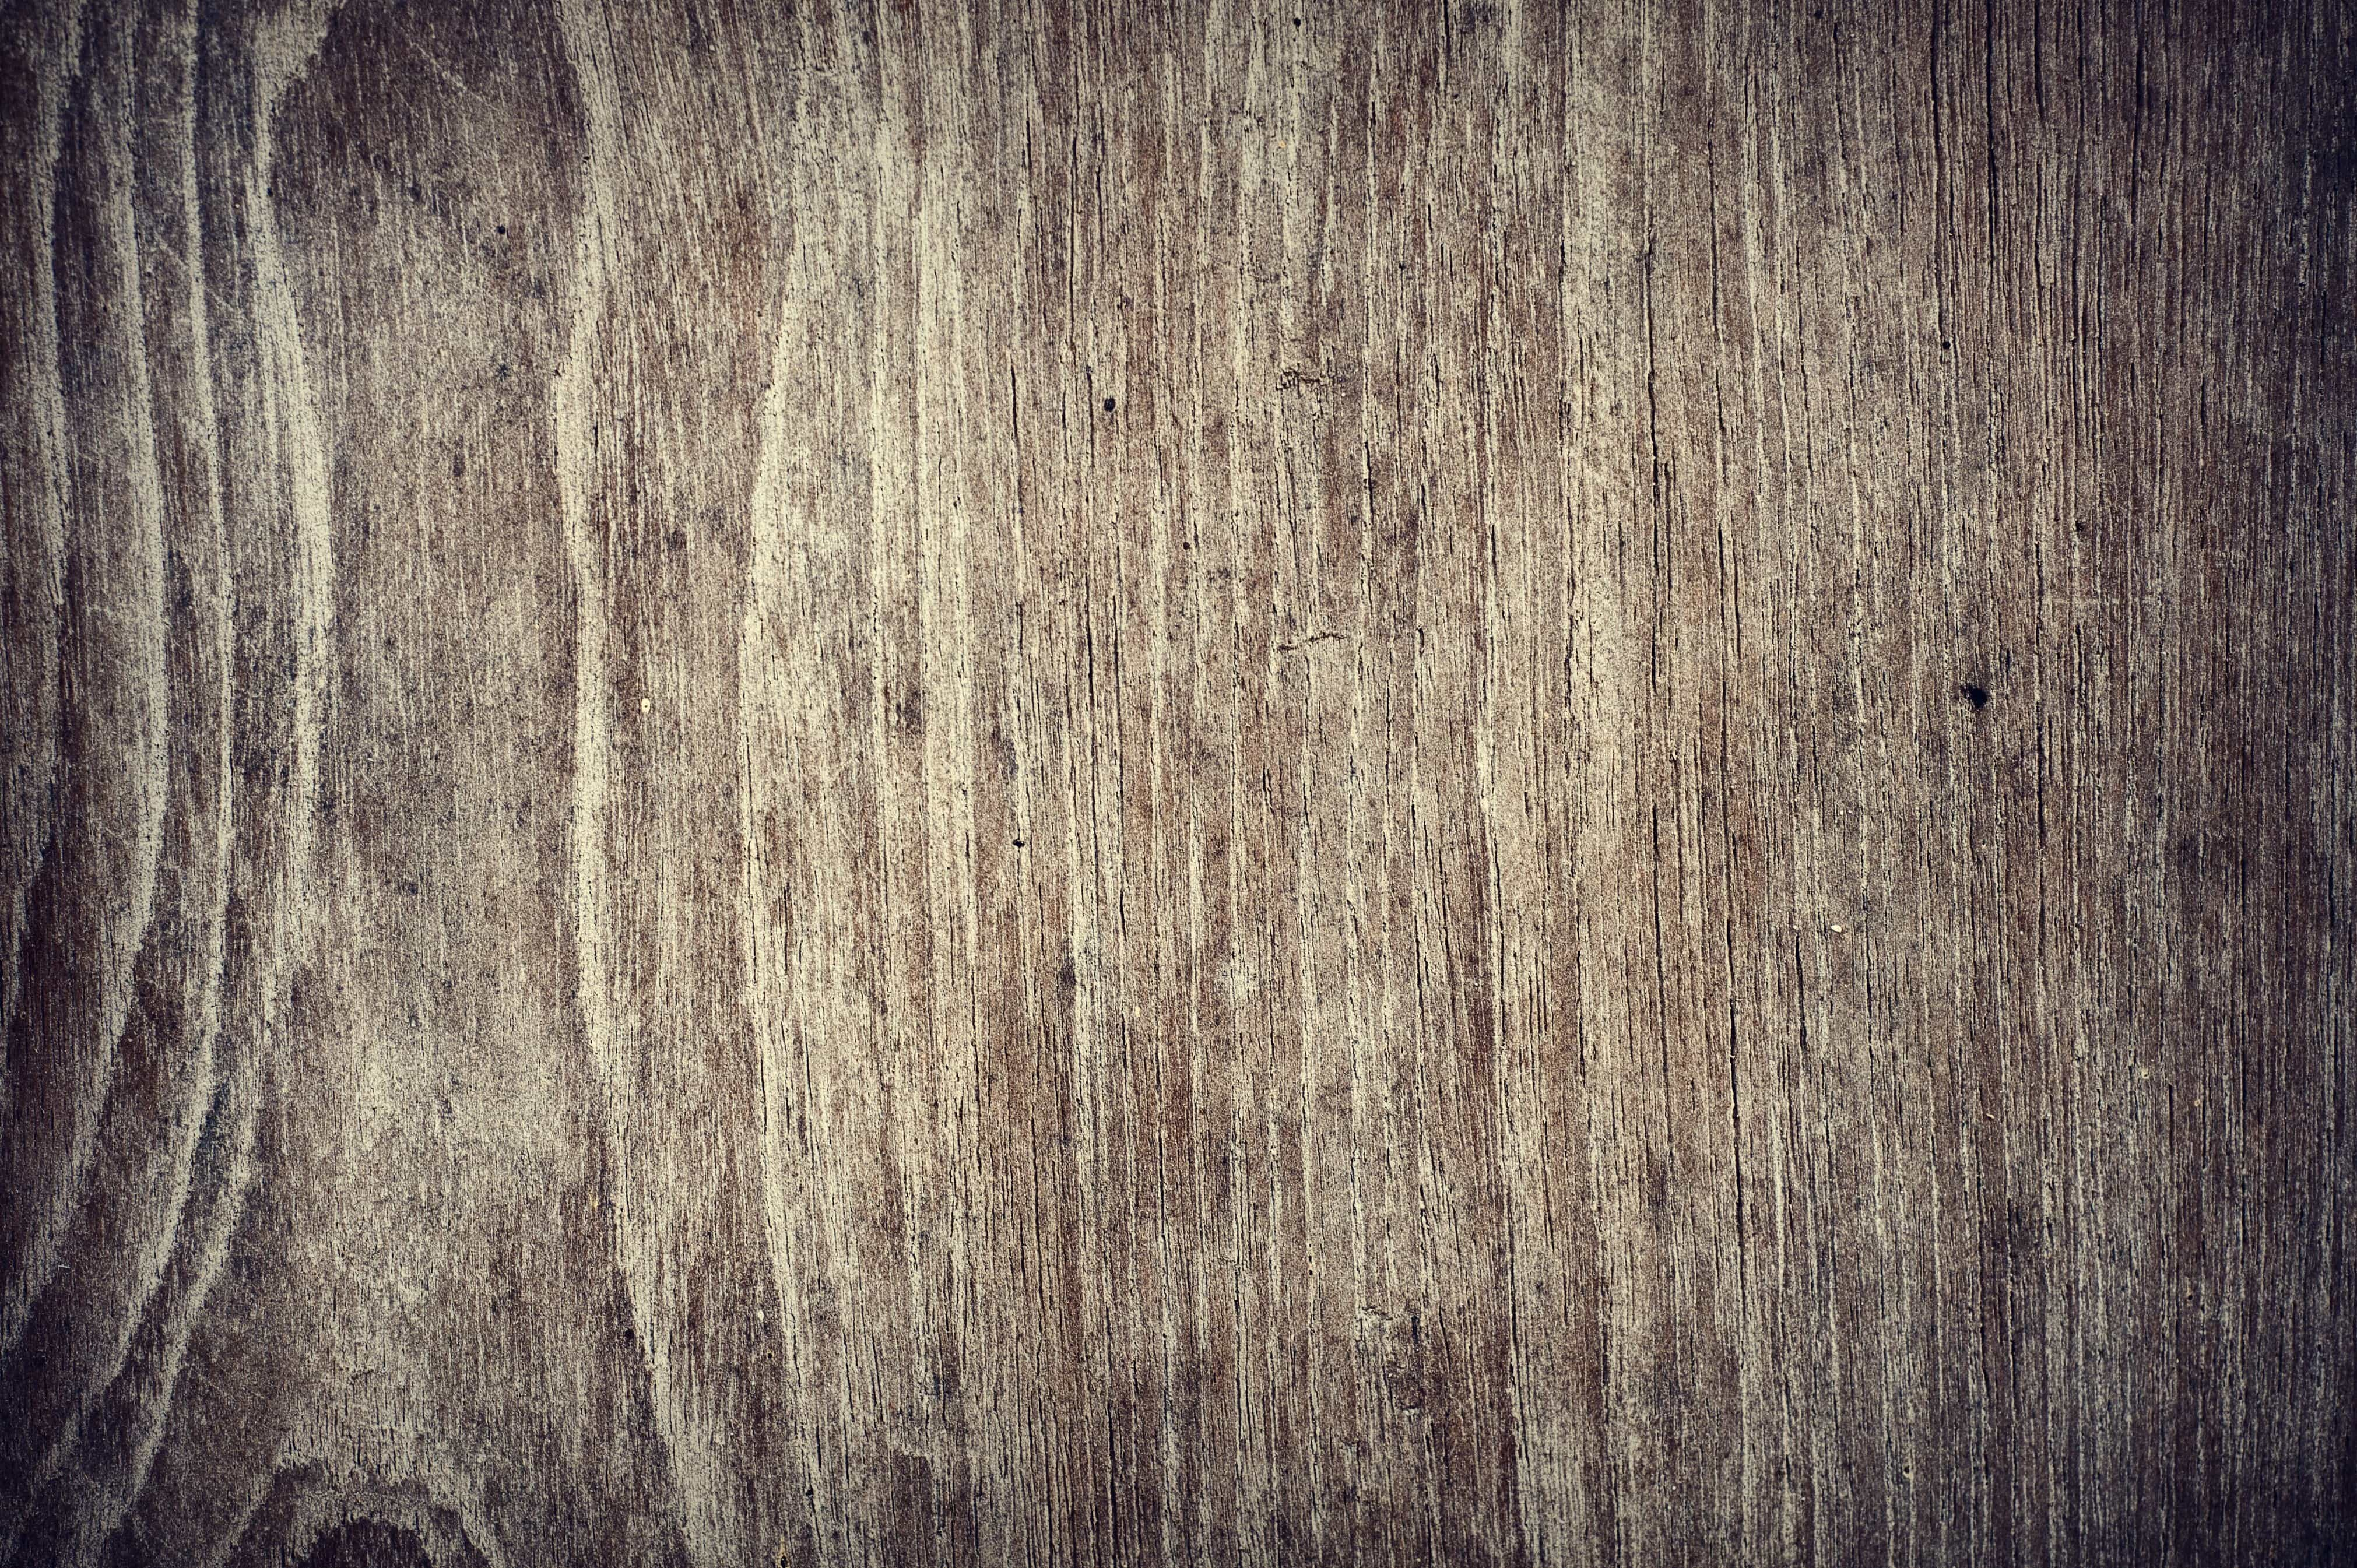 Free picture surface design texture wood pattern old